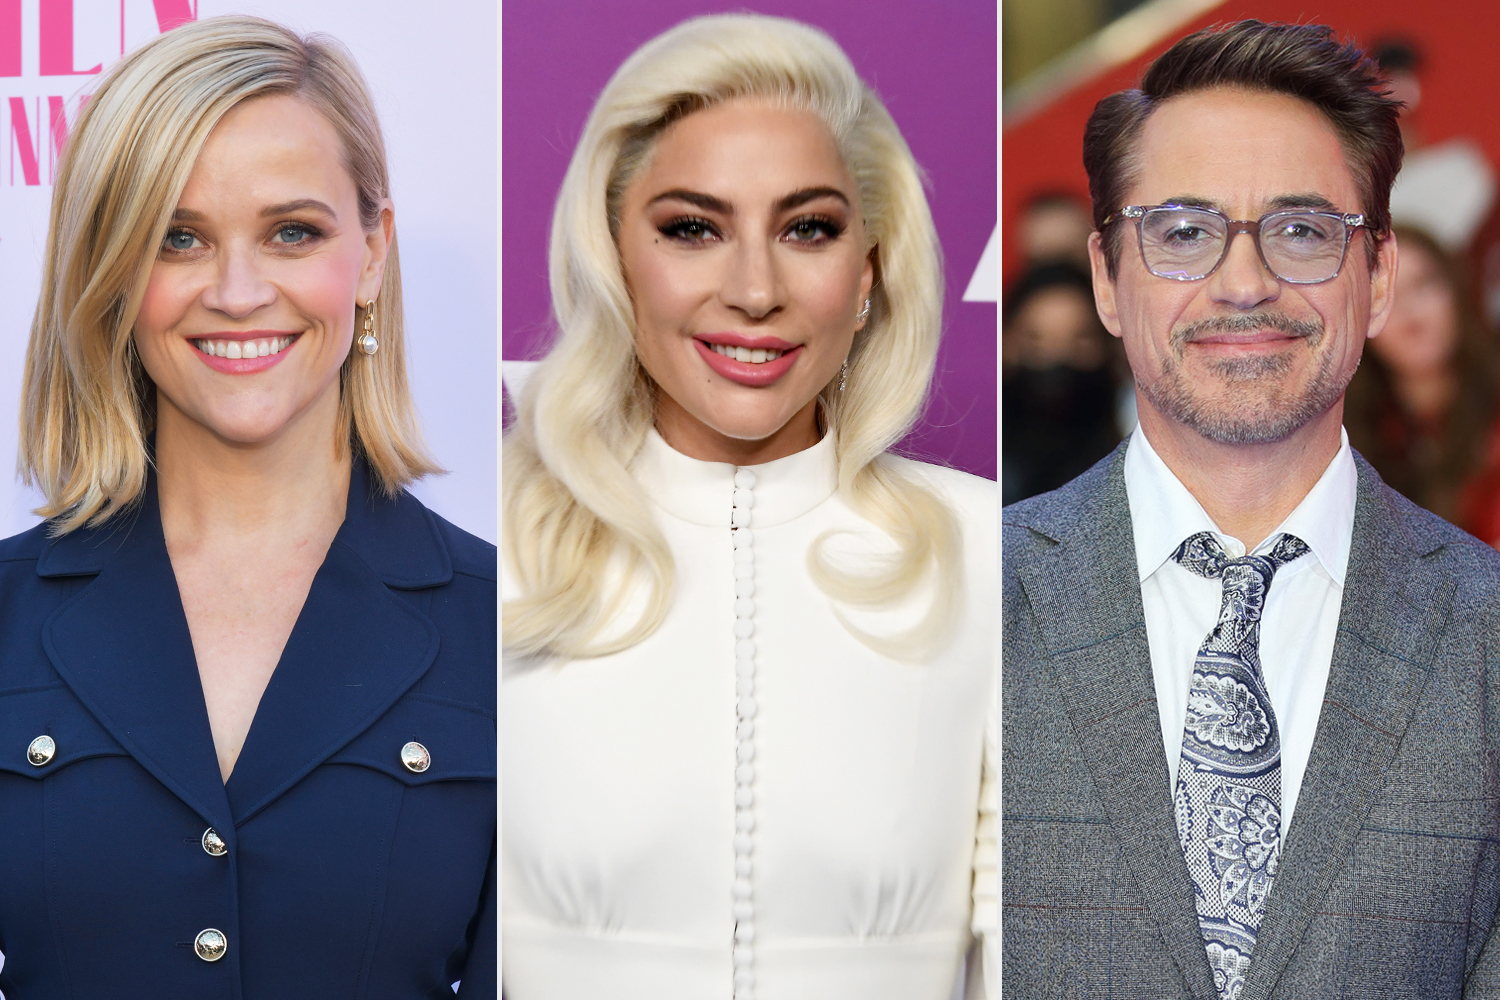 Reese Witherspoon Lady Gaga Robert Downey Jr.